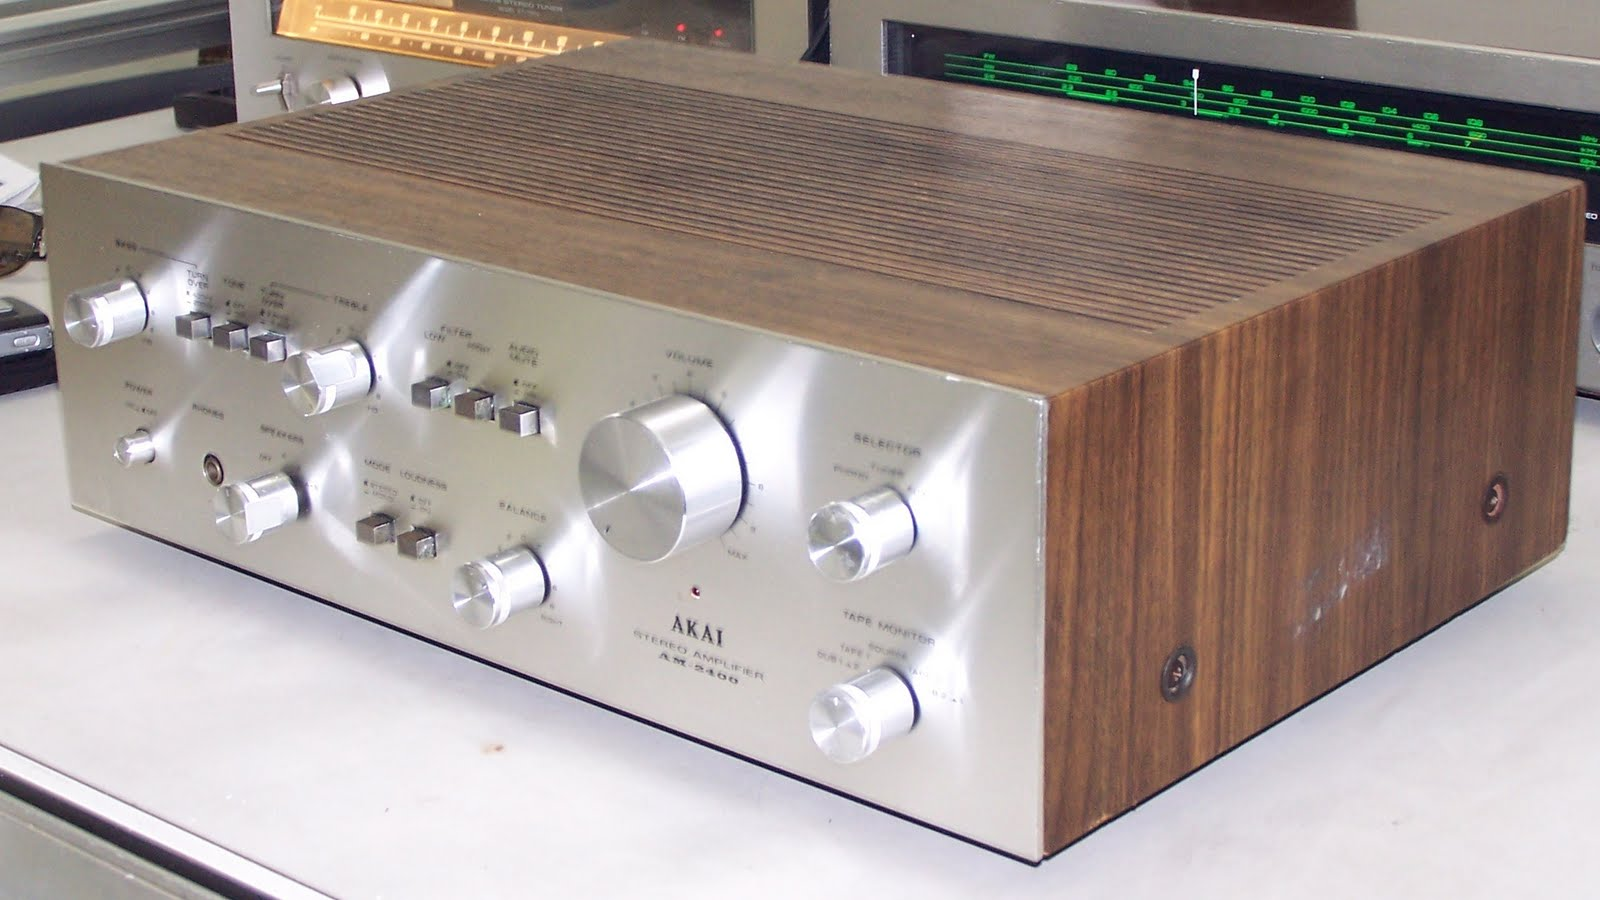 Vintage Audio: Akai AM 2400 Integrated Amplifier Specifications